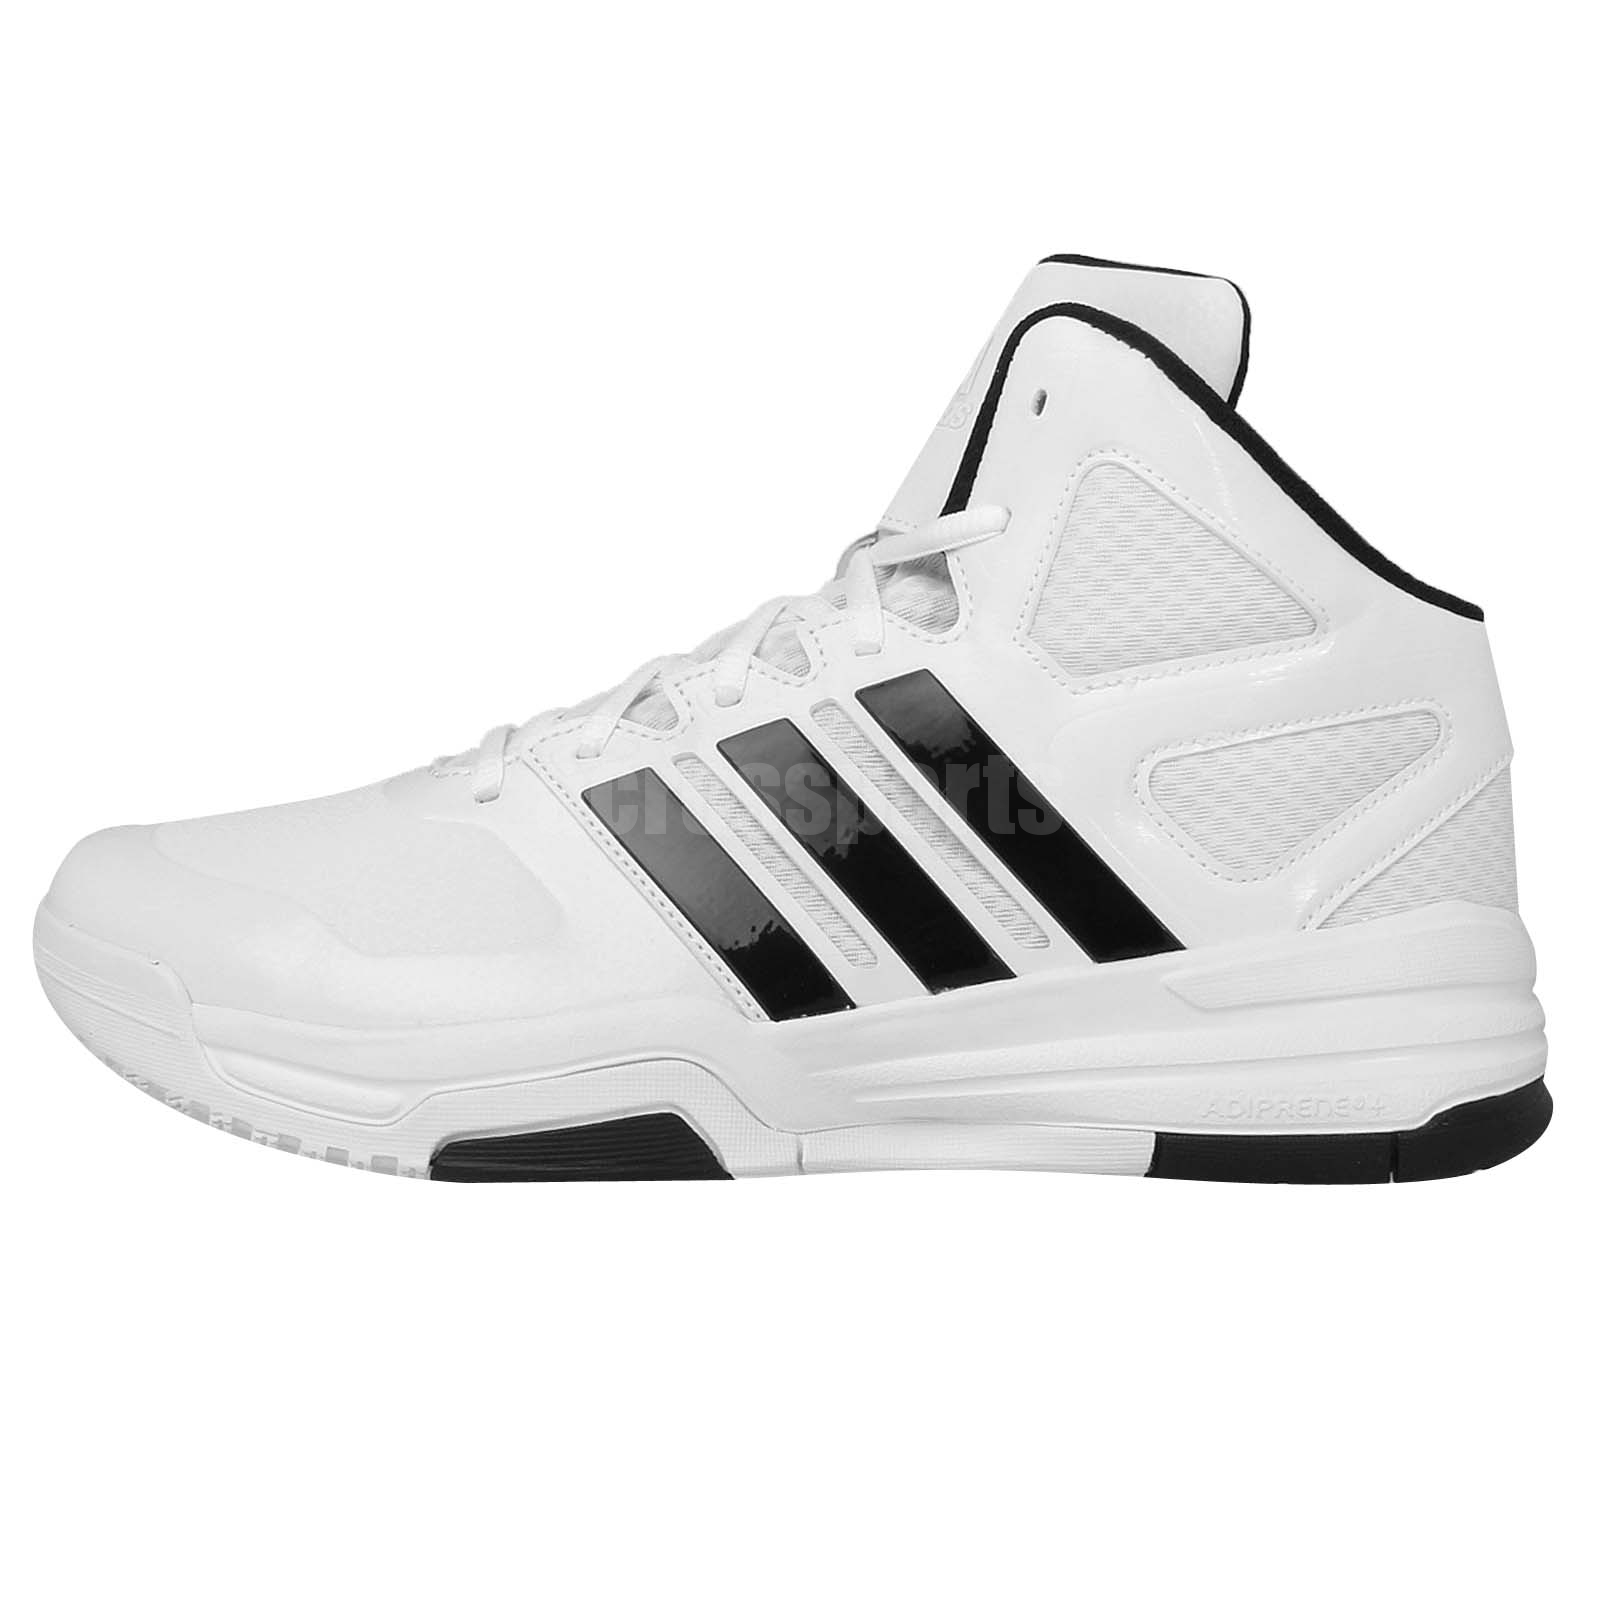 adidas basketball shoes white. adidas basketball shoes all white h